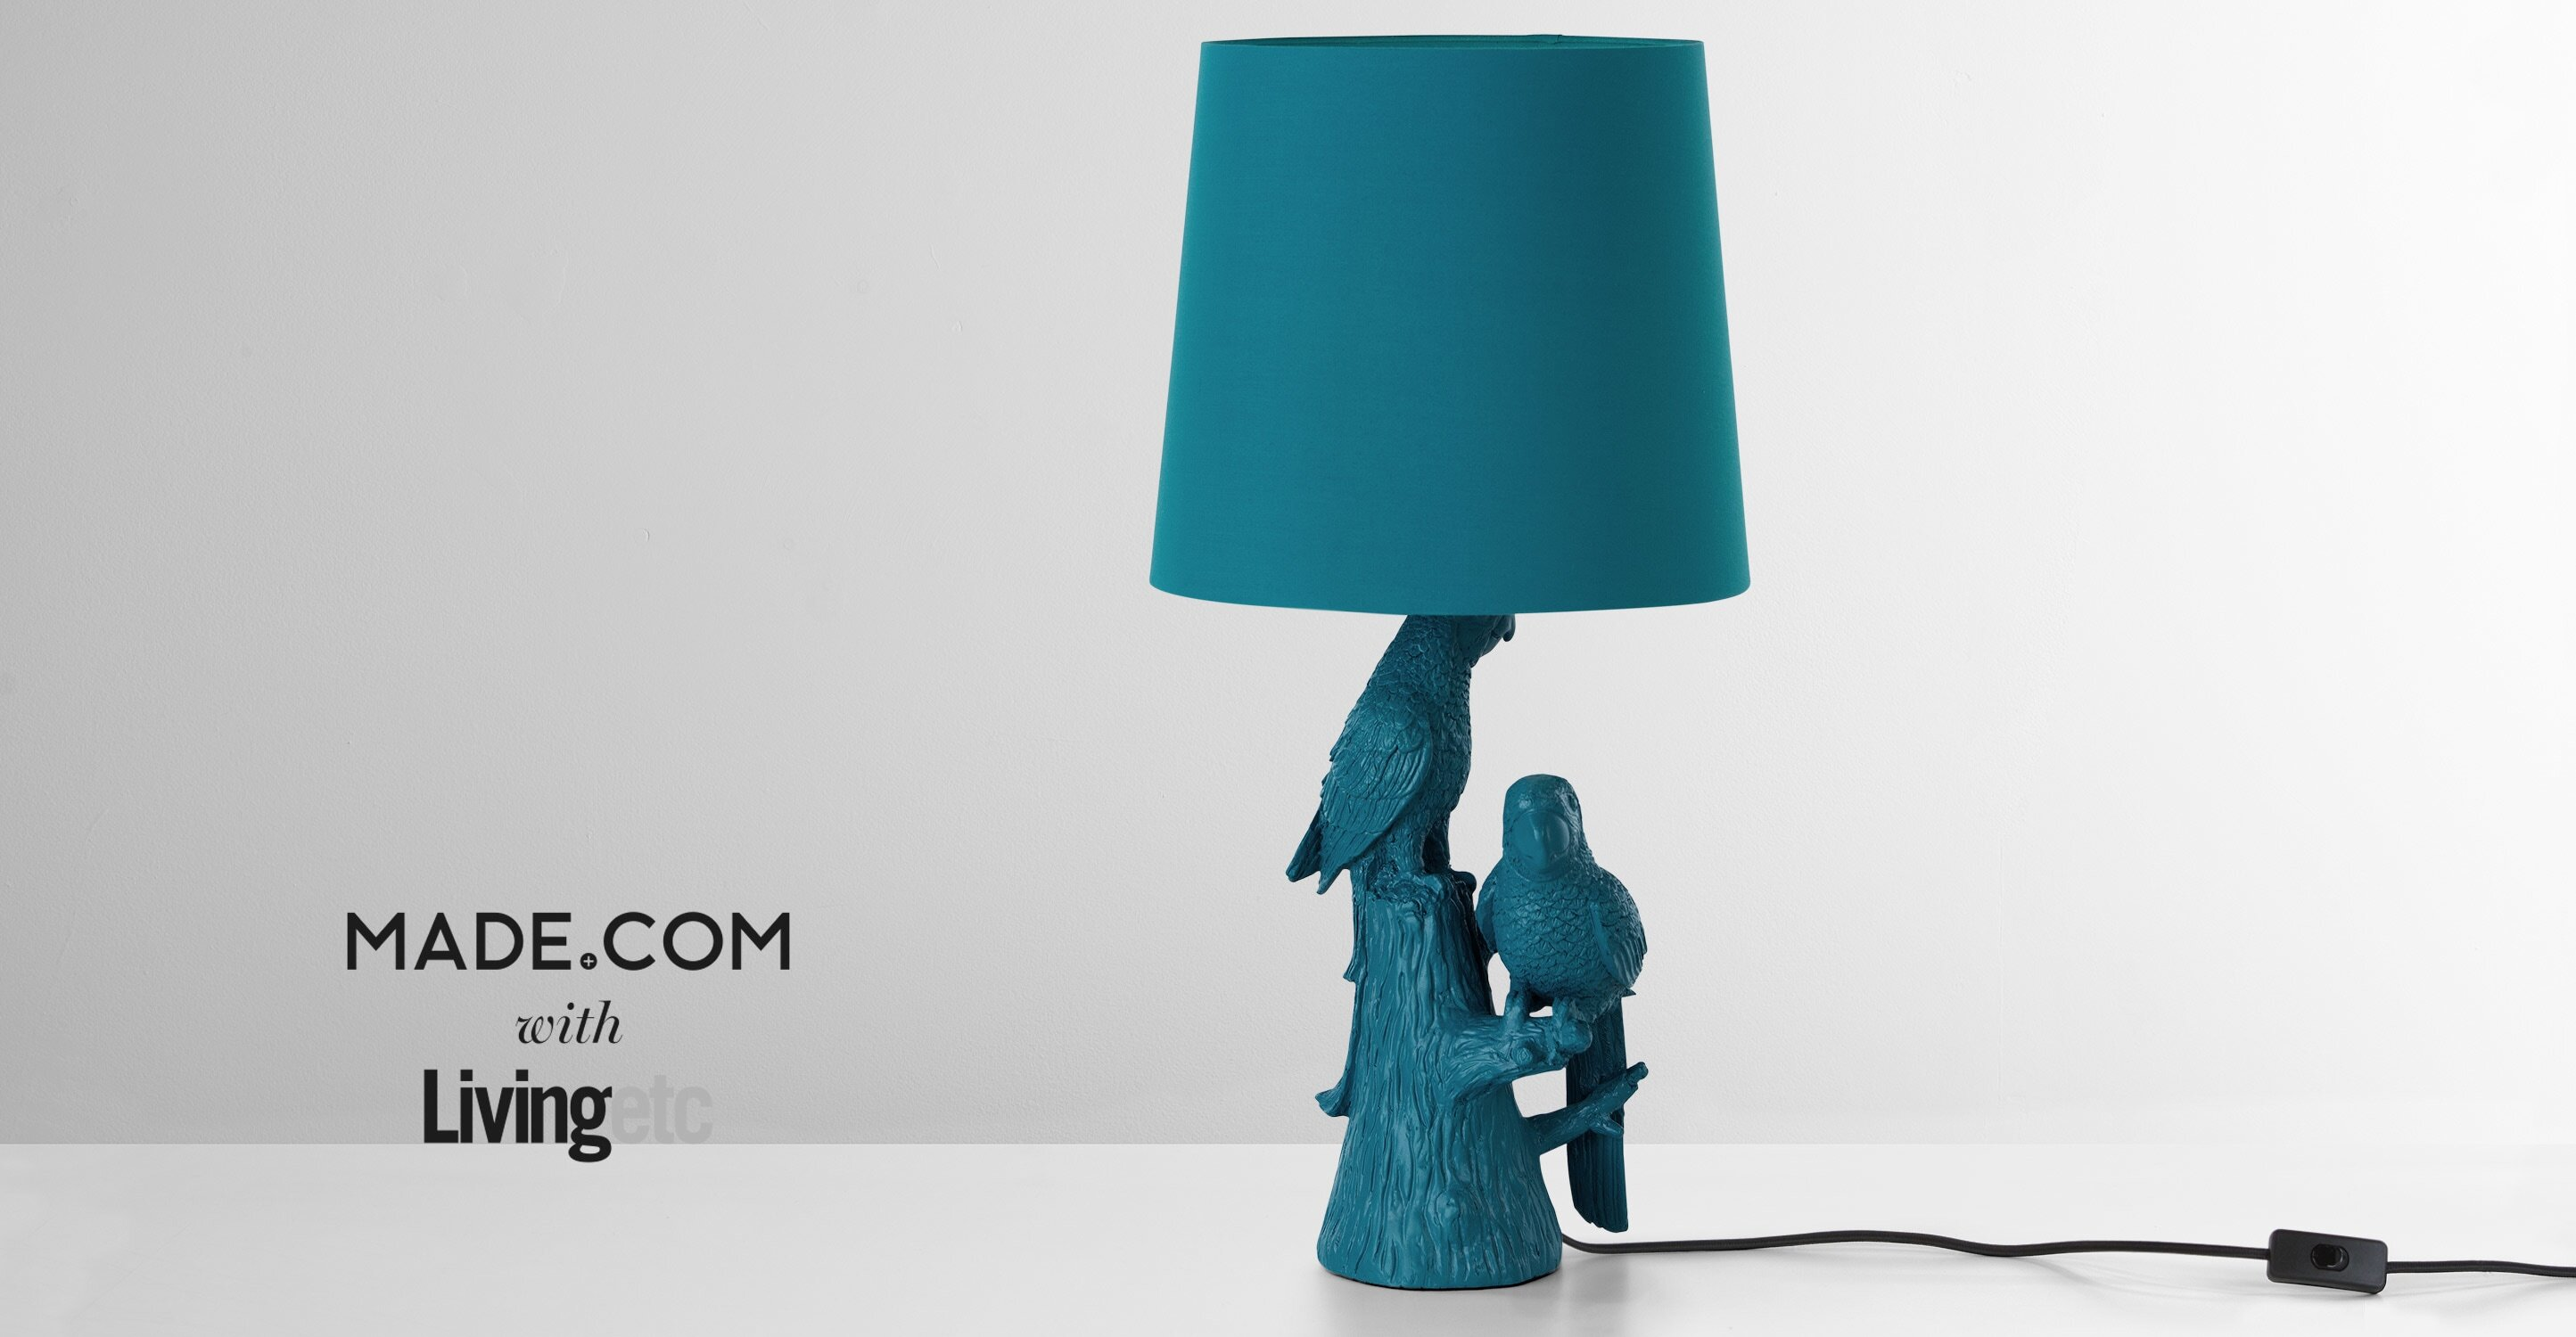 Parrot Table Lamp in Teal